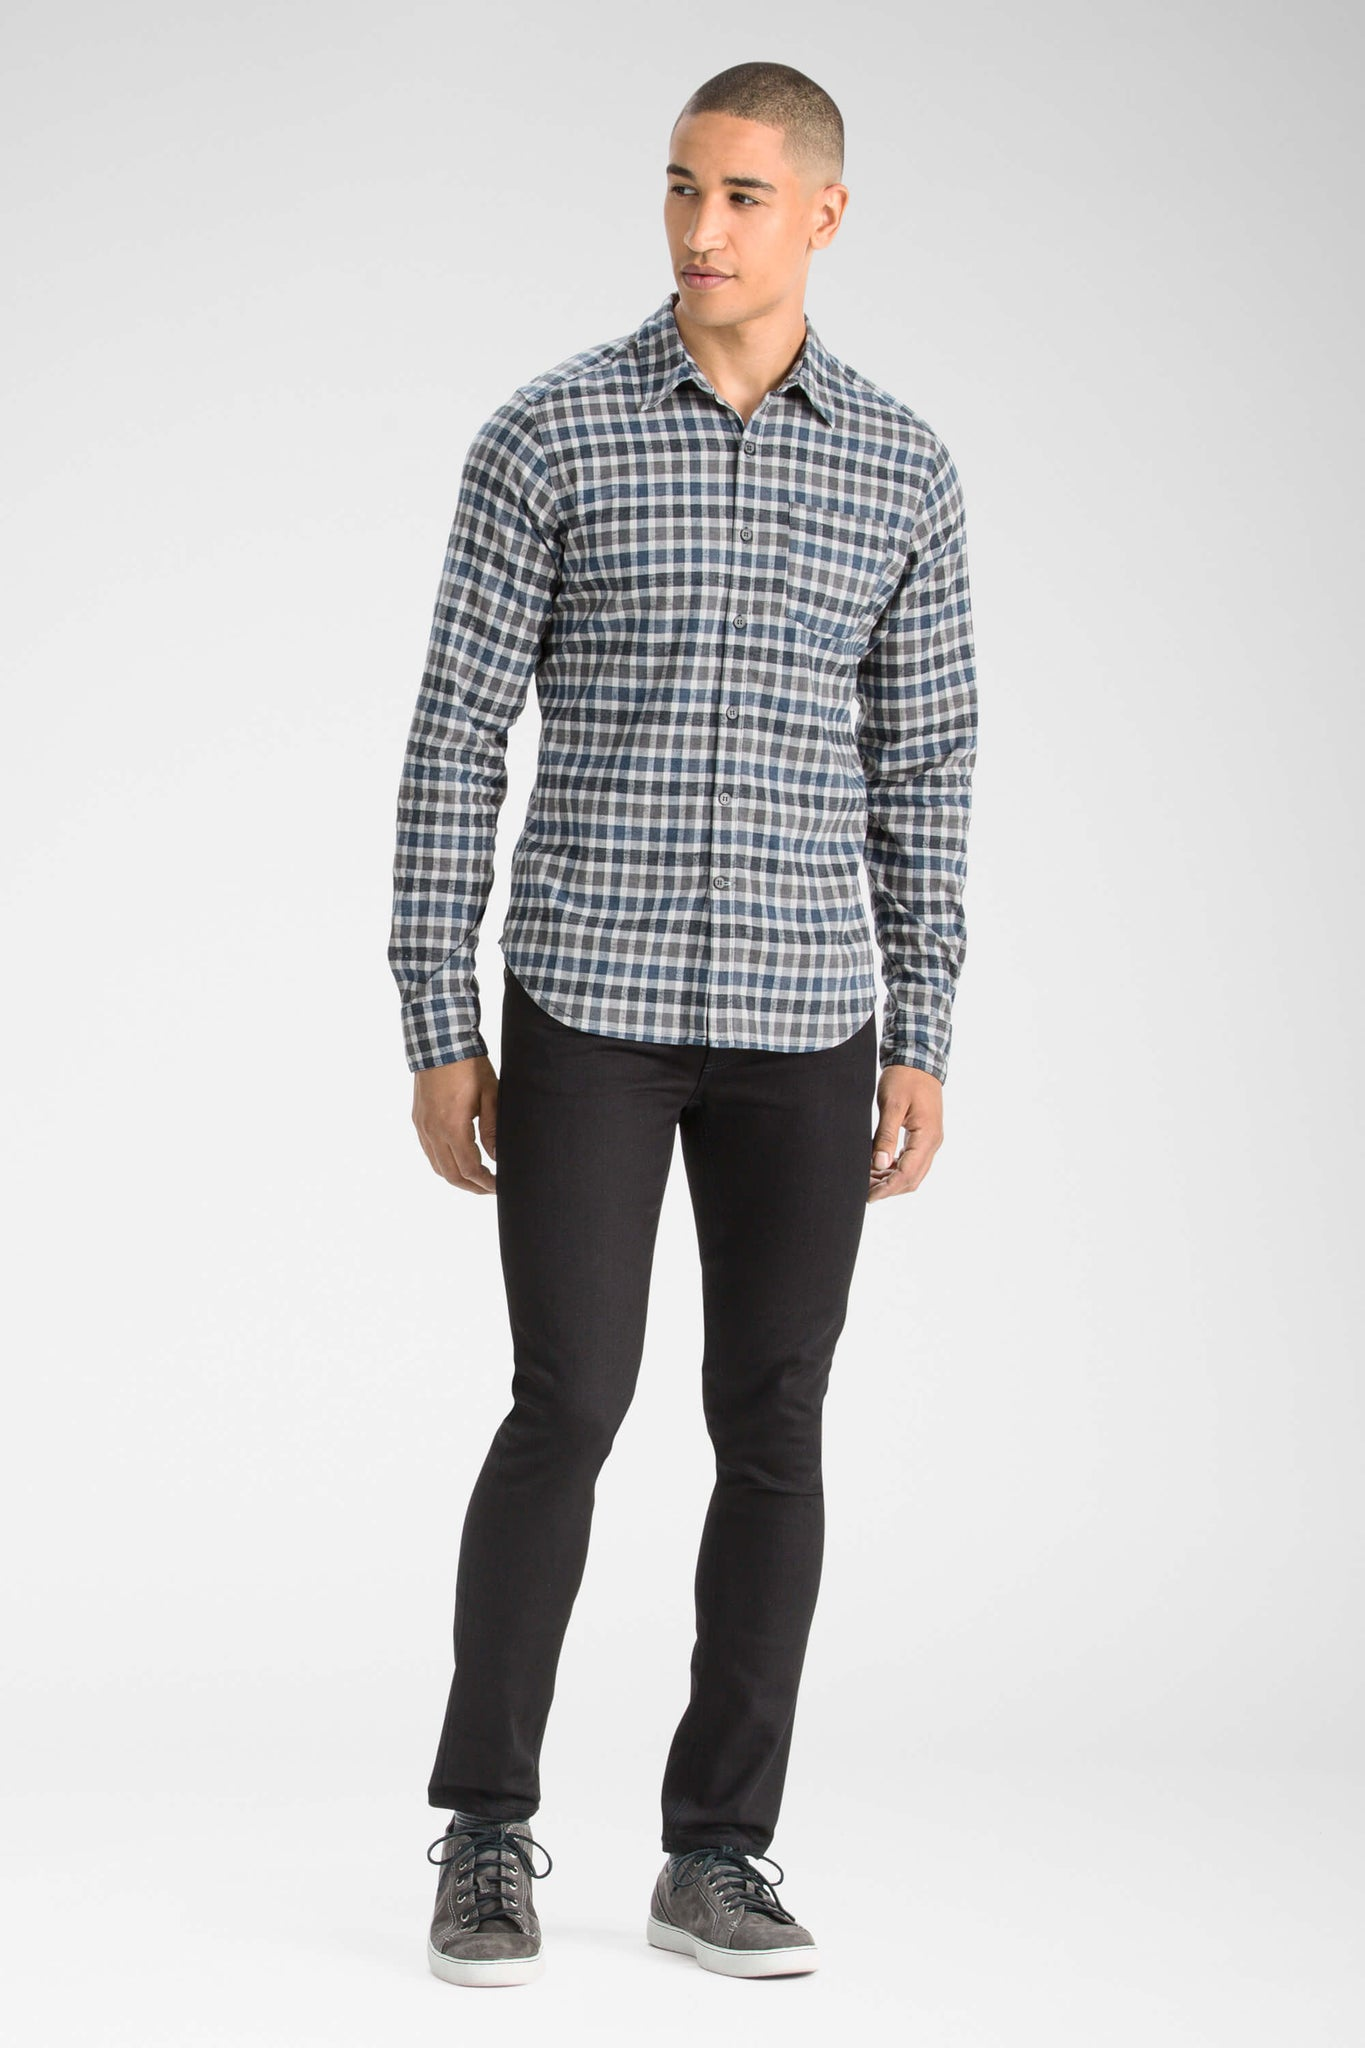 men's long sleeve hemp blend checkout shirt - indigo plaid